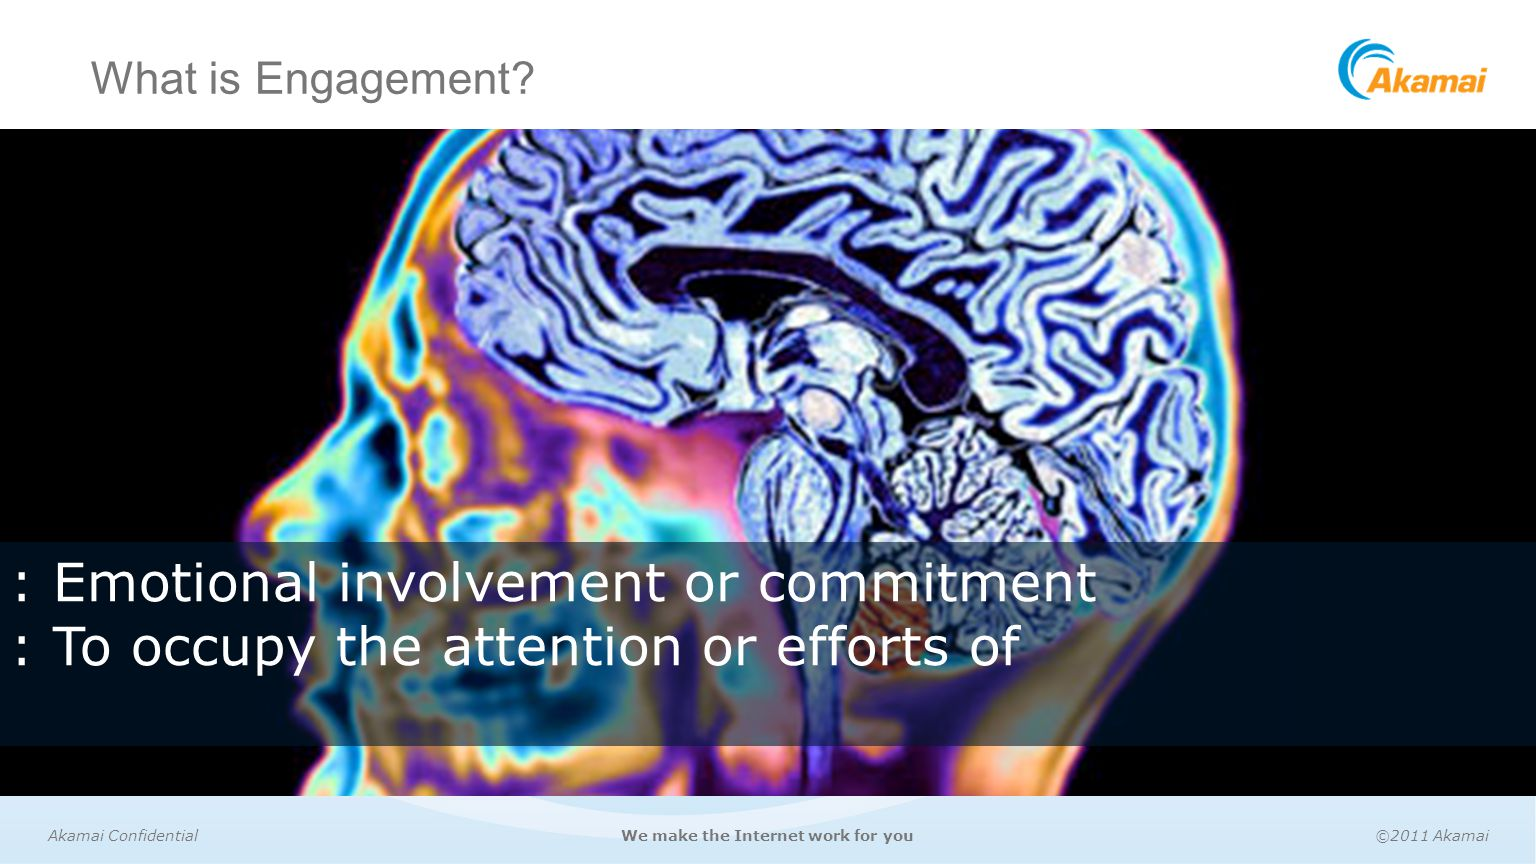 Akamai Media Analytics Driving Engagement Ppt Video Online Download Simple Brain Diagram For Kids Aofcom 3 Emotional Involvement Or Commitment